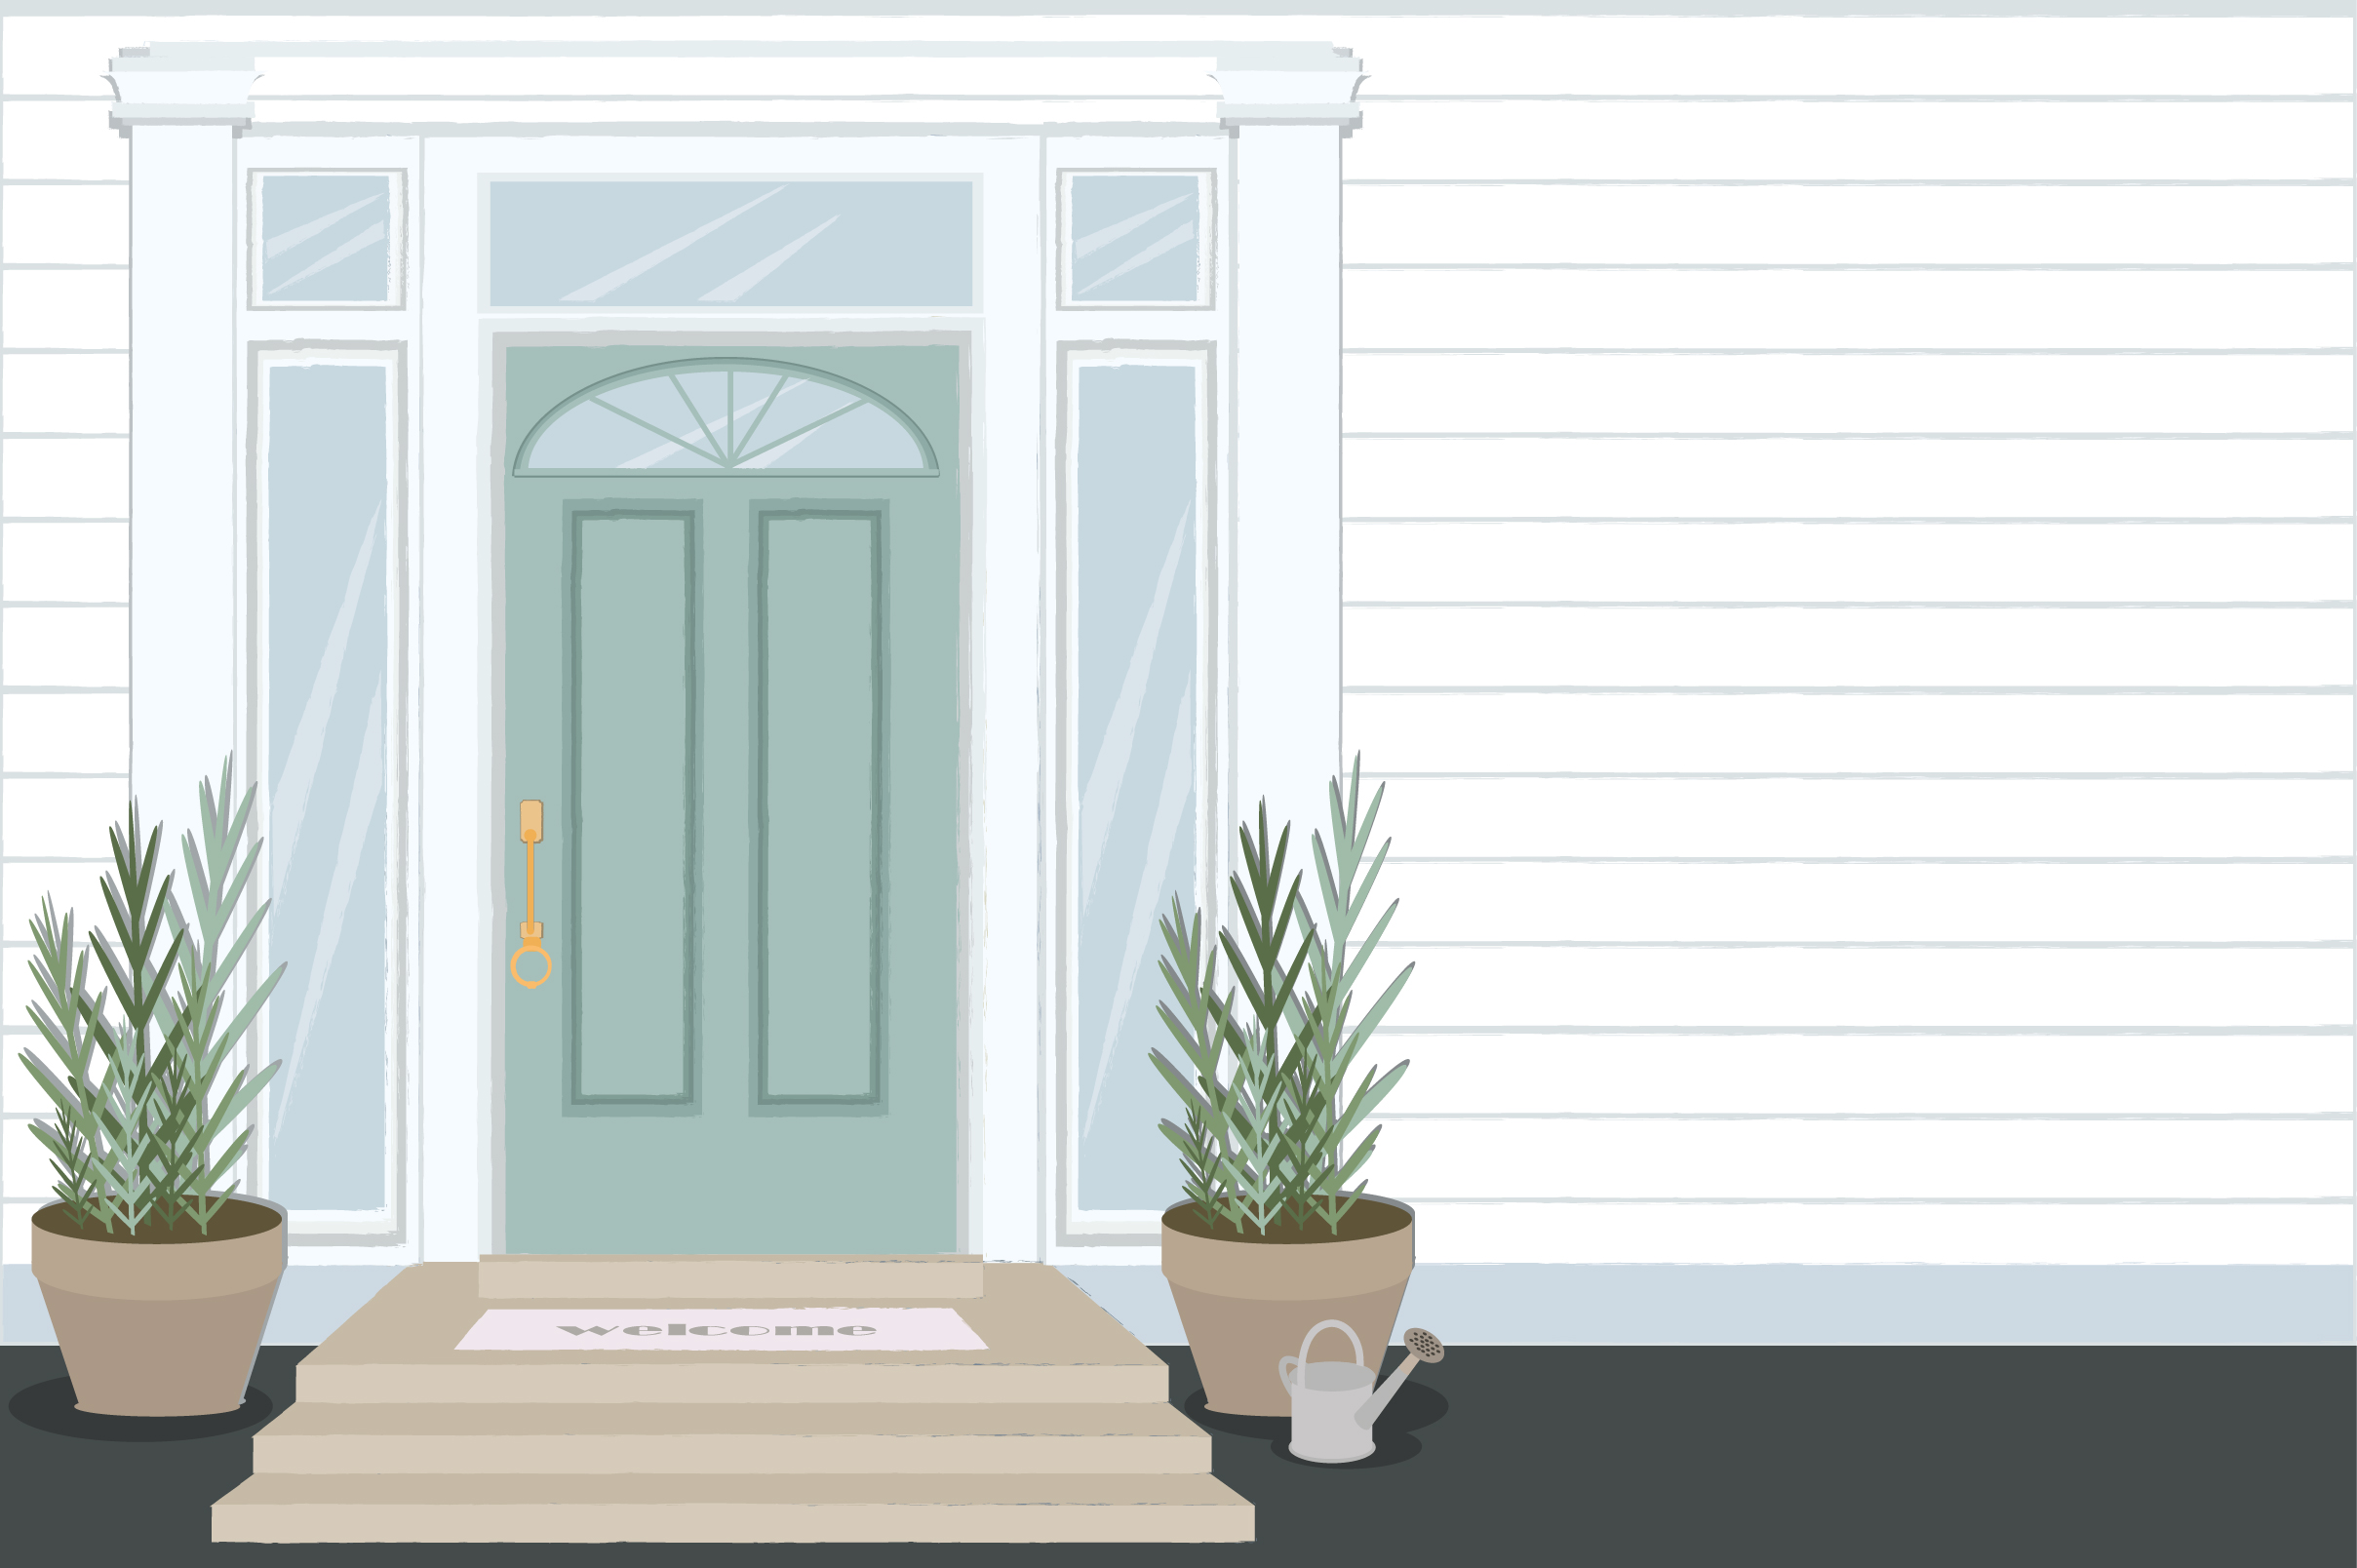 Doors design collection example image 10